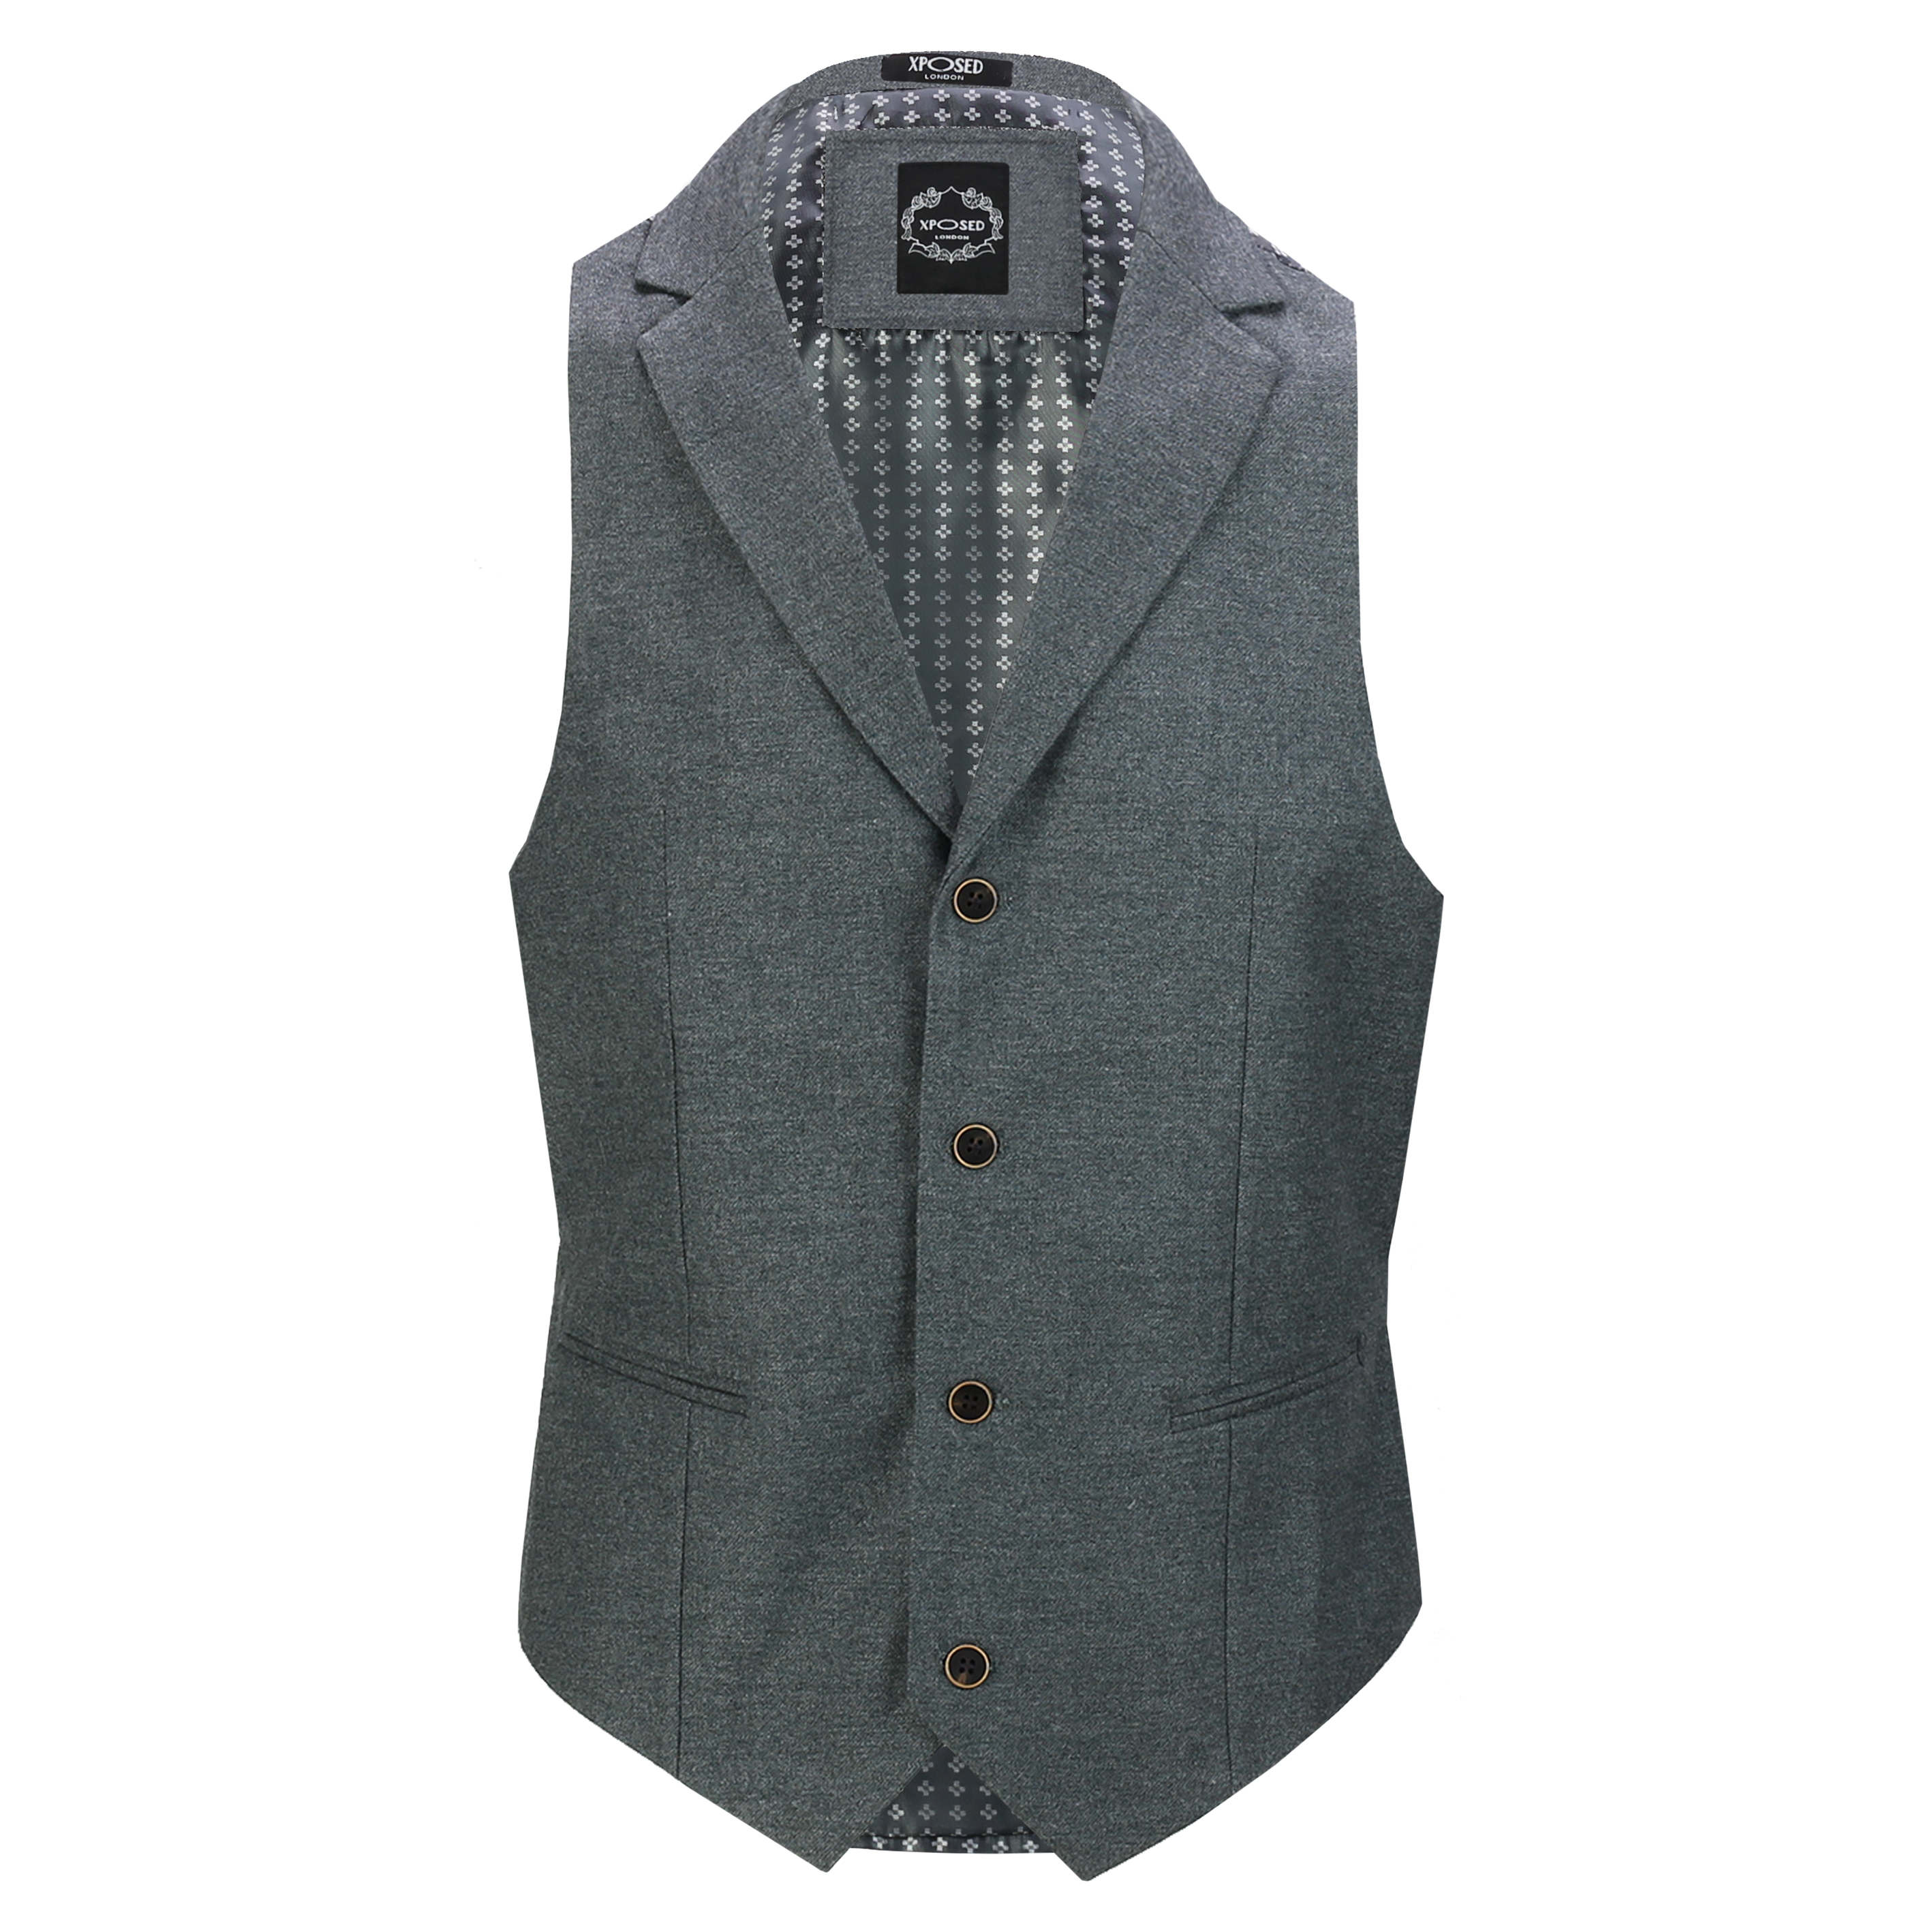 Mens-Classic-Collar-Waistcoat-Retro-Vintage-Style-Tailored-Fit-Smart-Formal-Vest thumbnail 12